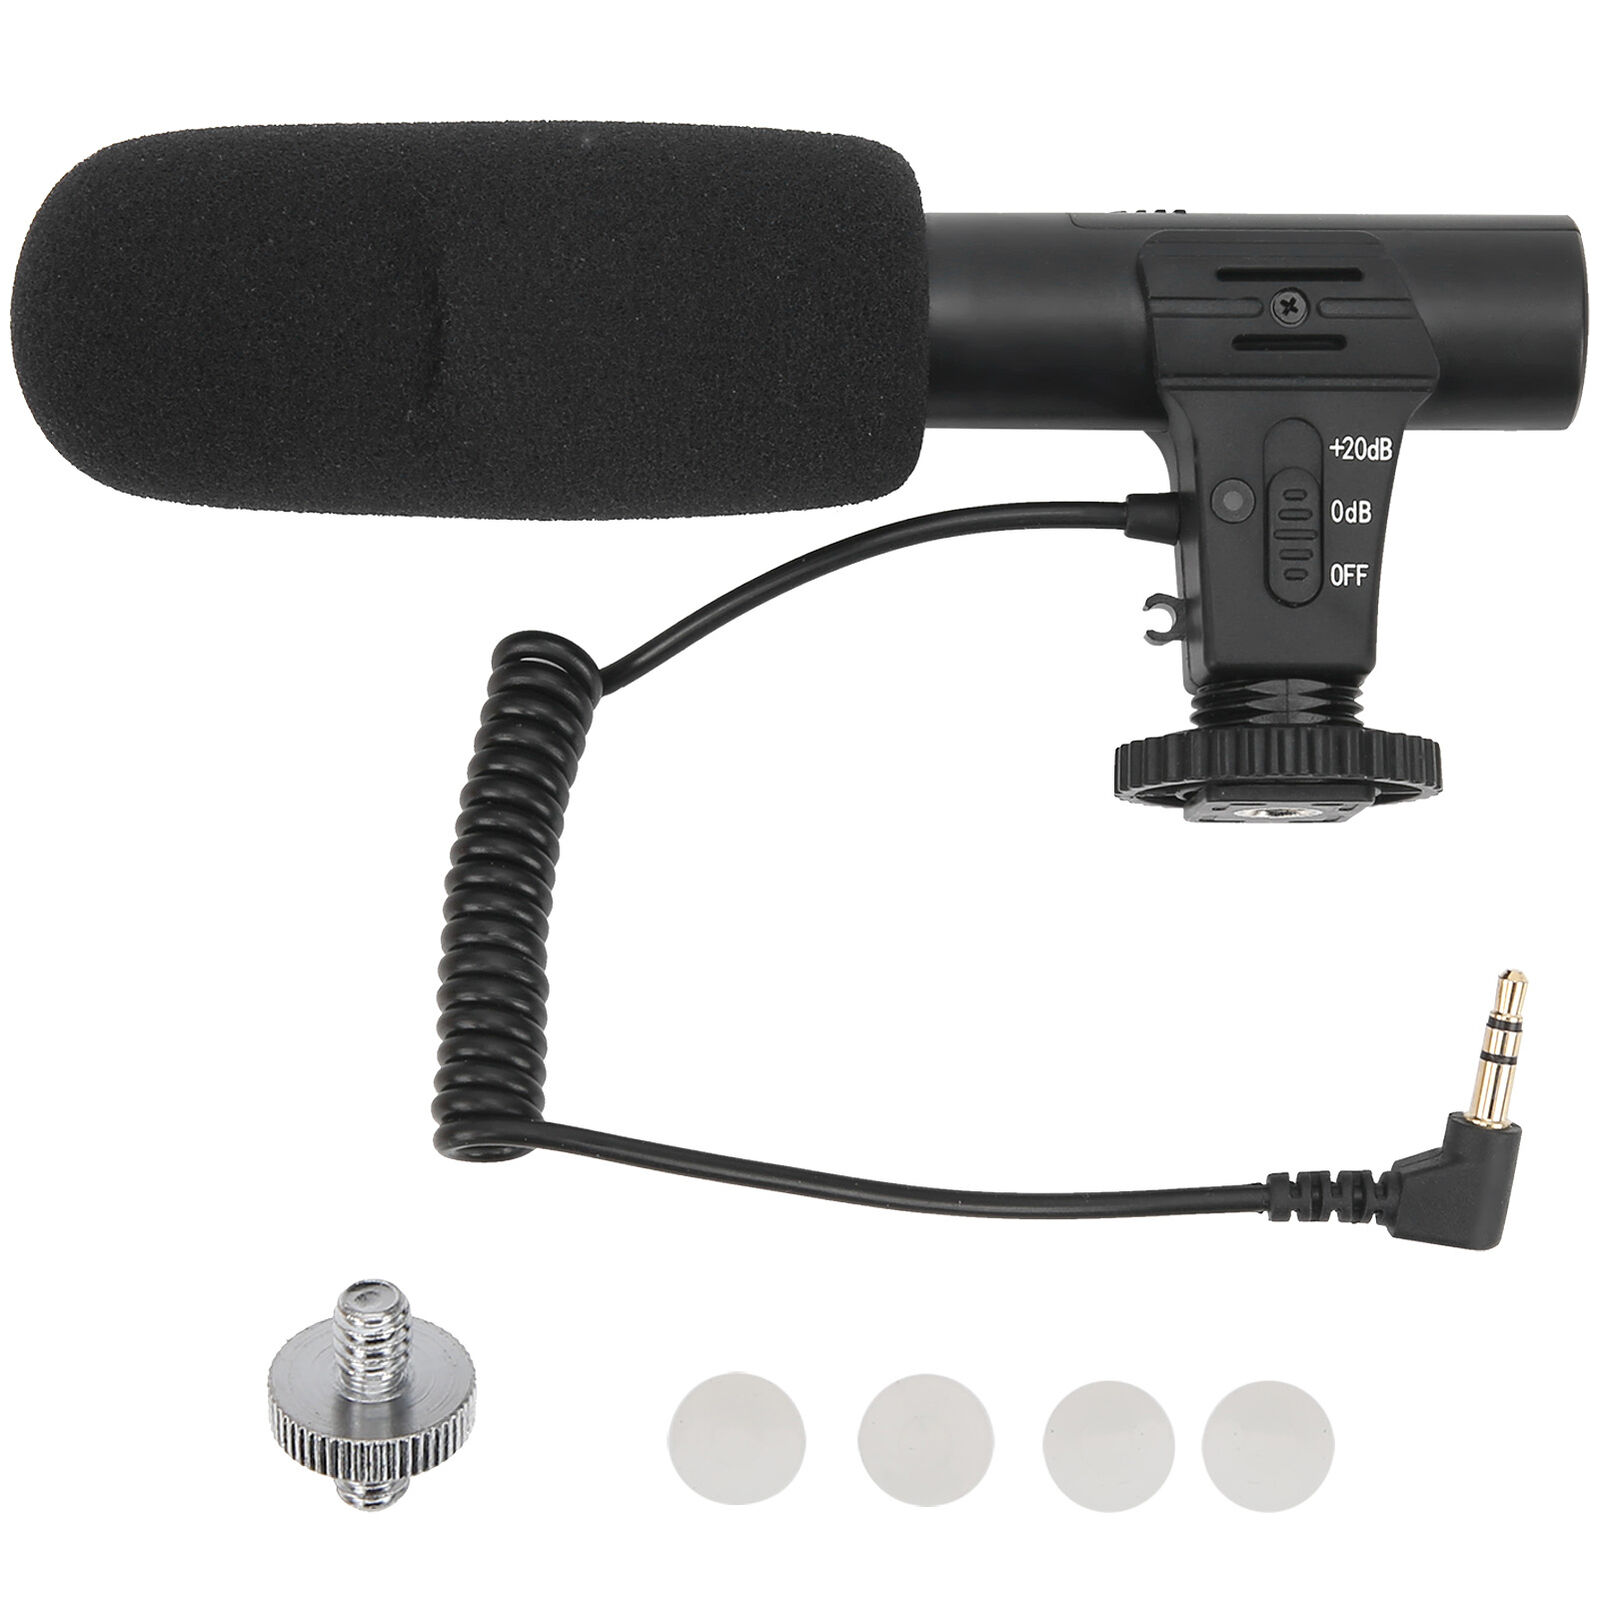 3.5mm Portable Condenser Microphone Cold Shoe 1/4in Screw for DJI OSMO POCKET 2